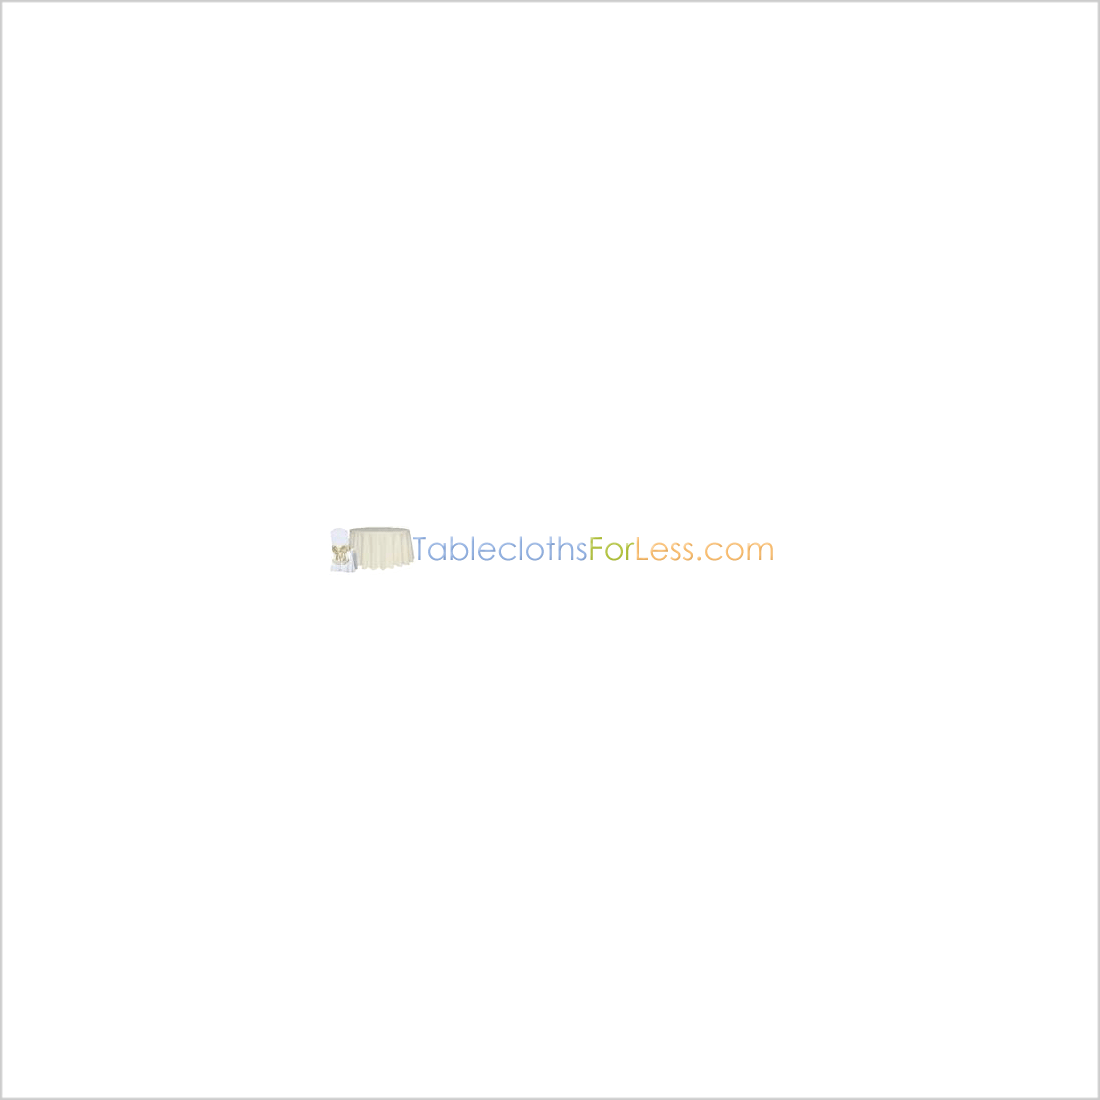 Square Polyester Tablecloth Black 54x54 inch